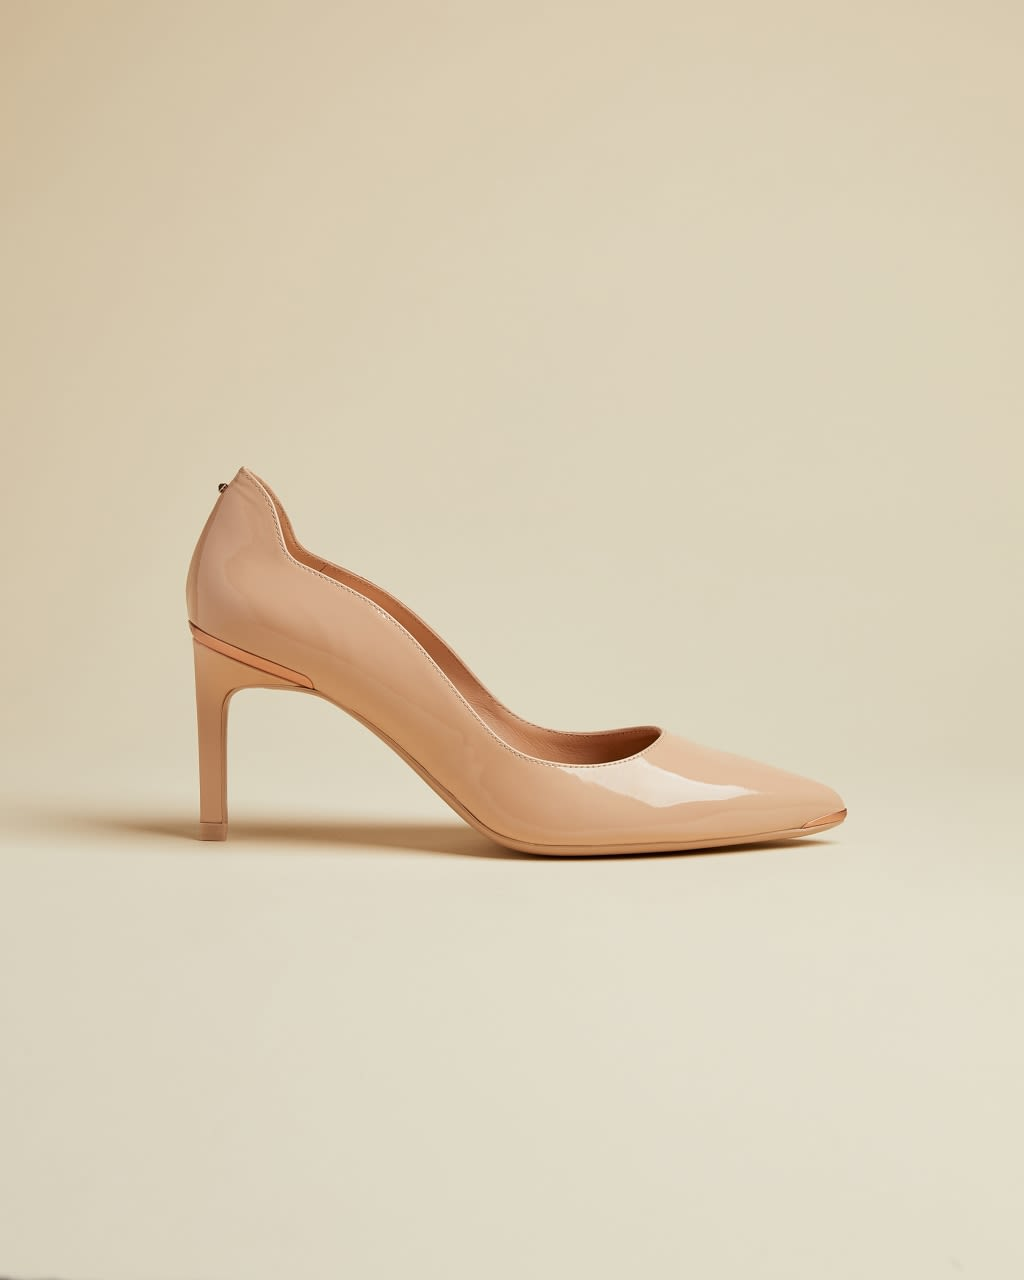 TED BAKER Patent Leather Courts   TED BAKER SALE